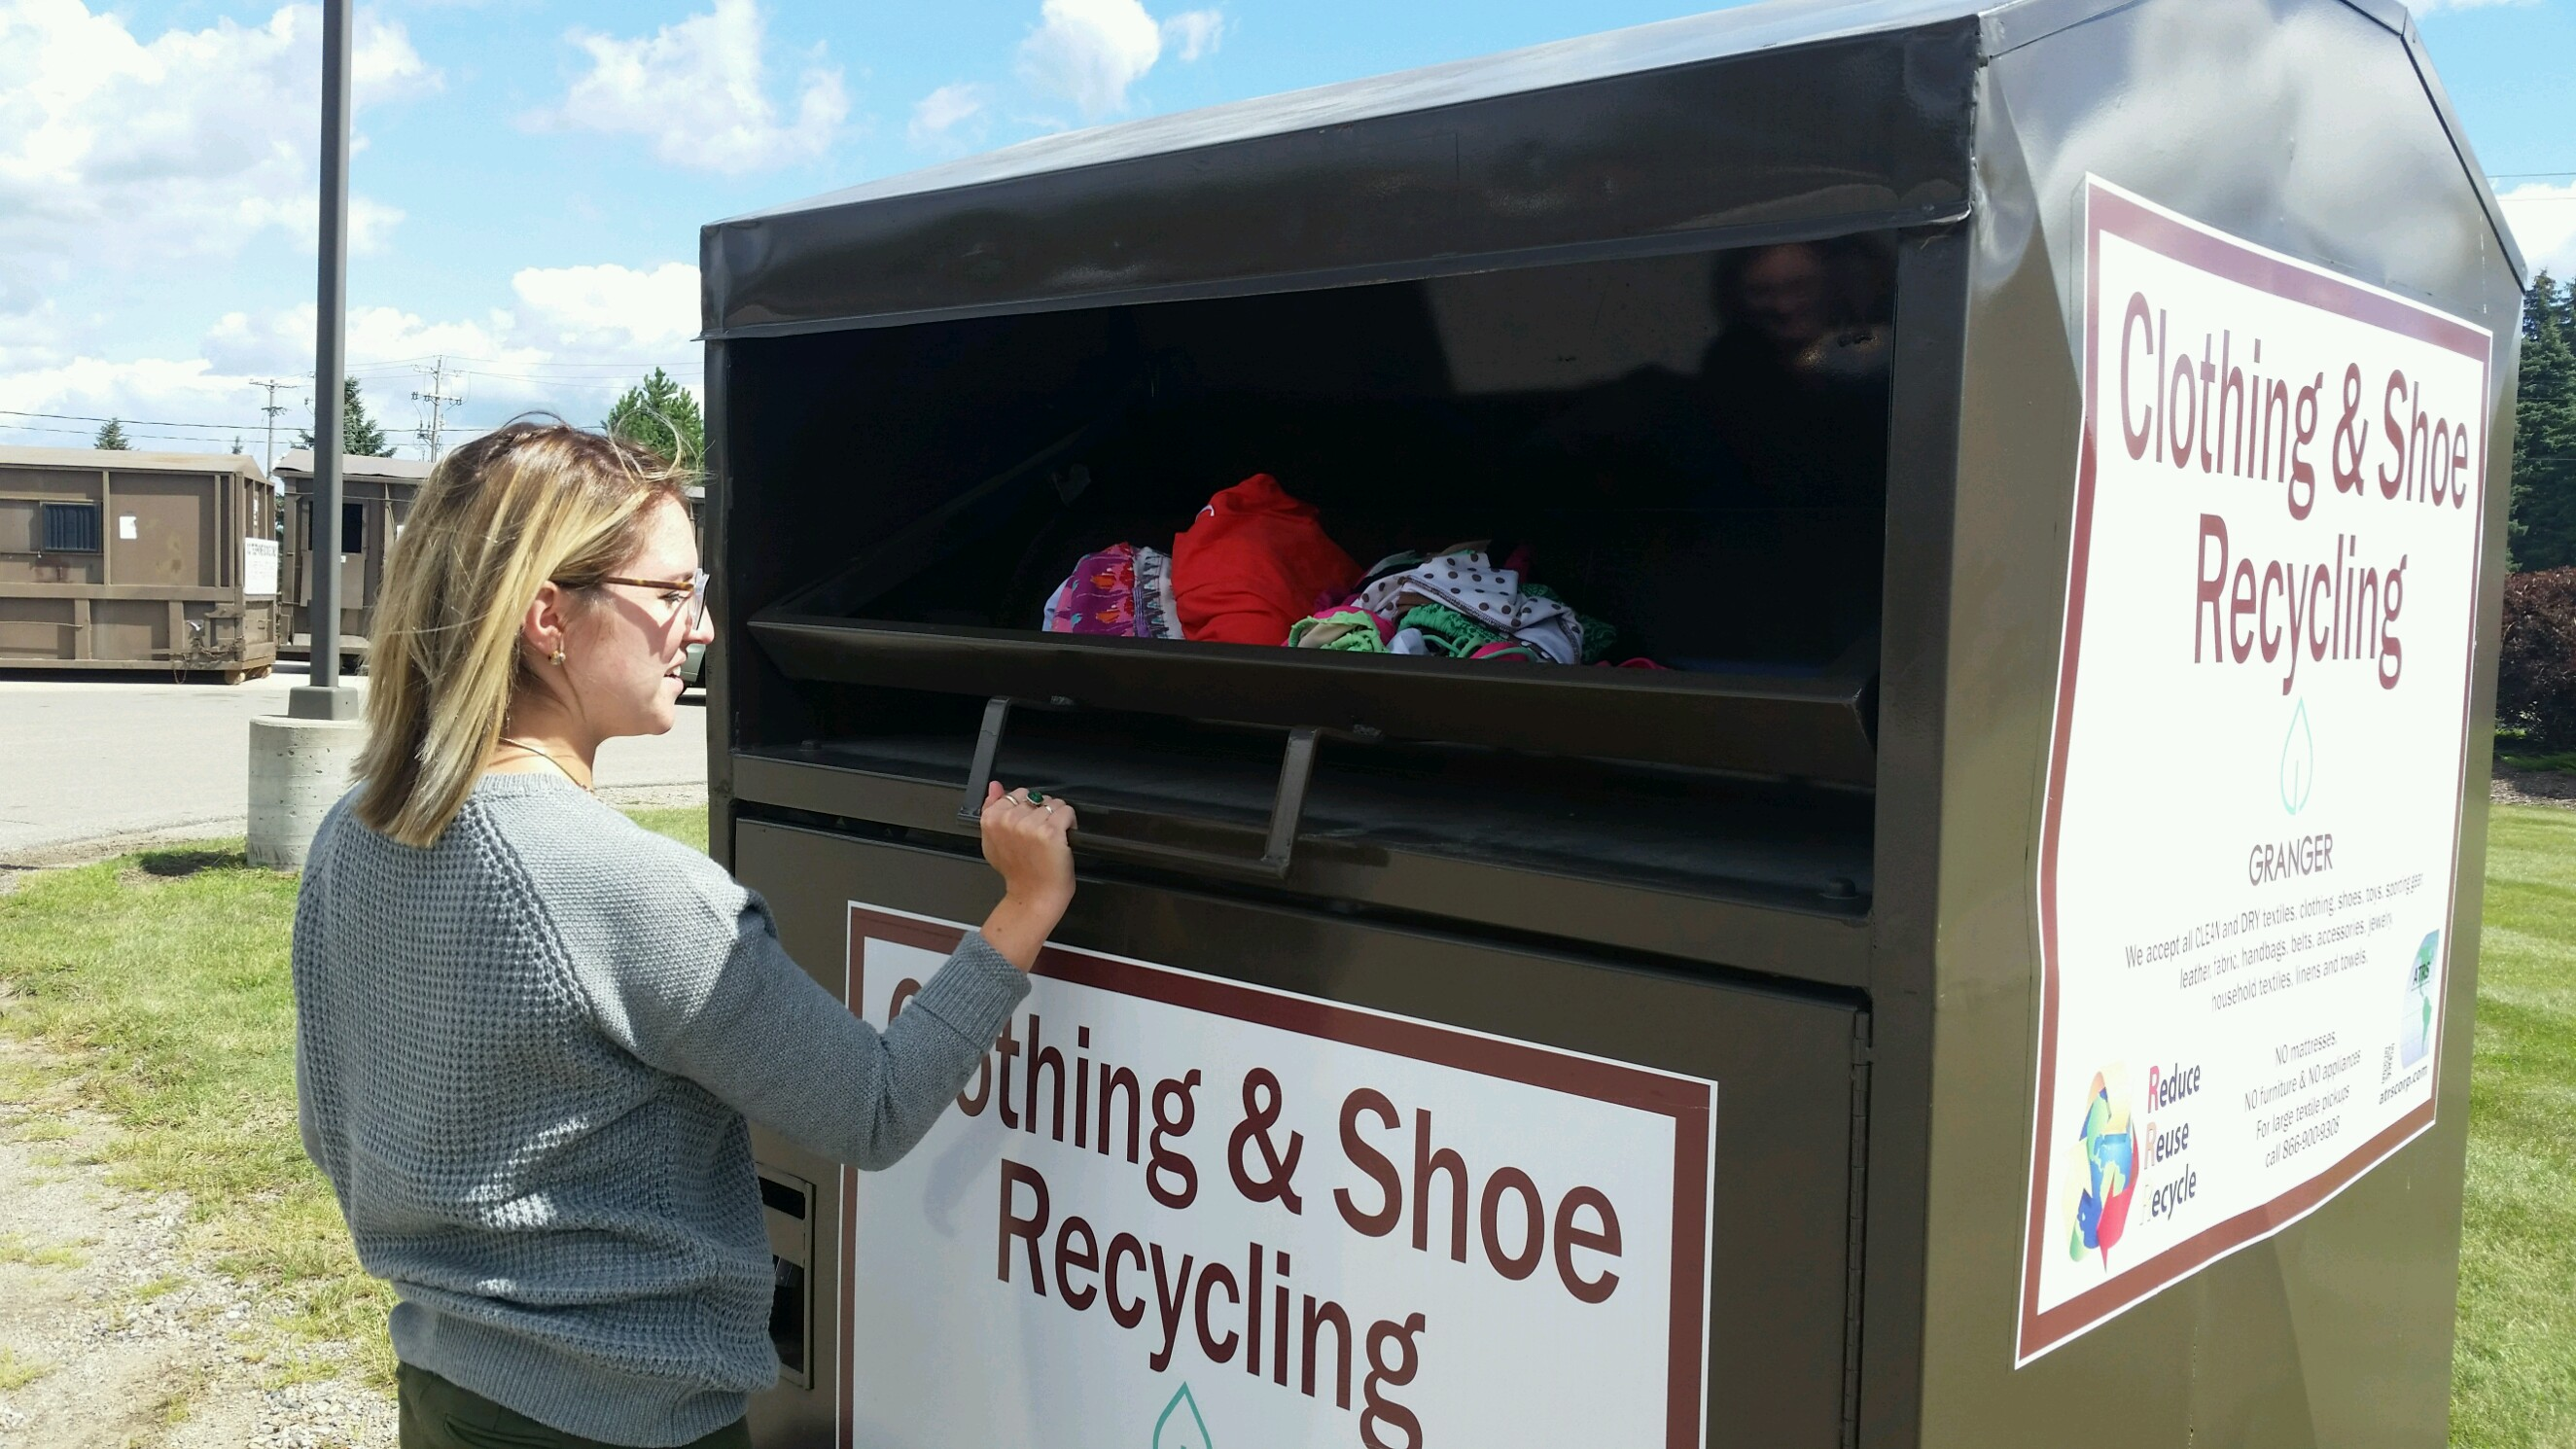 Make room for back to school shopping—recycle your old clothes and shoes at Granger